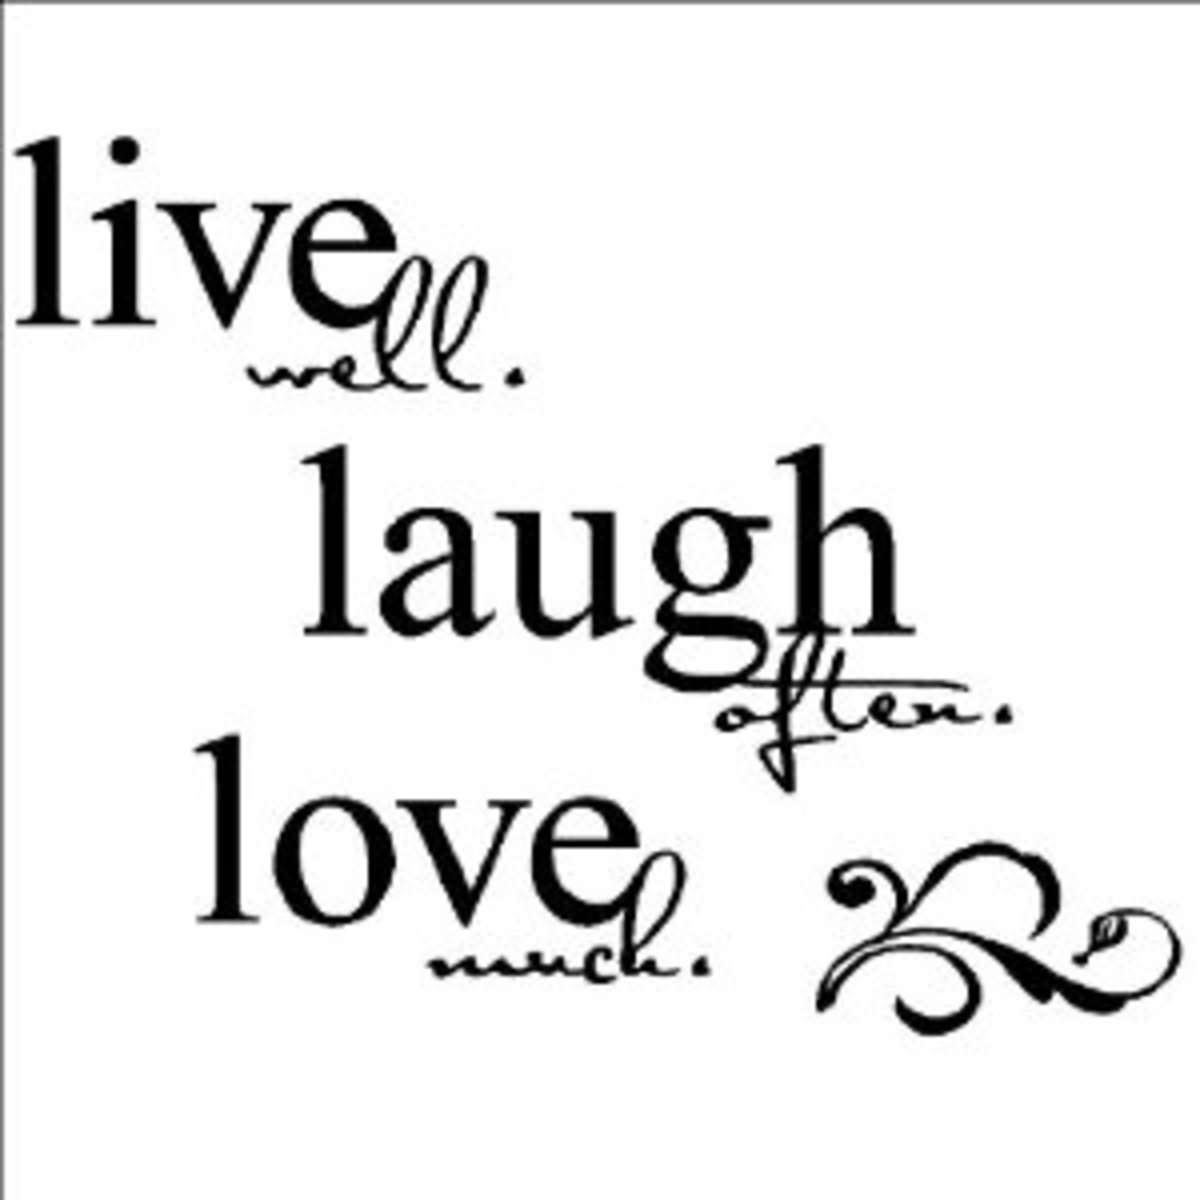 Live Laugh Love Wall Décor:  From Wall Decals to Hanging Picture Frames